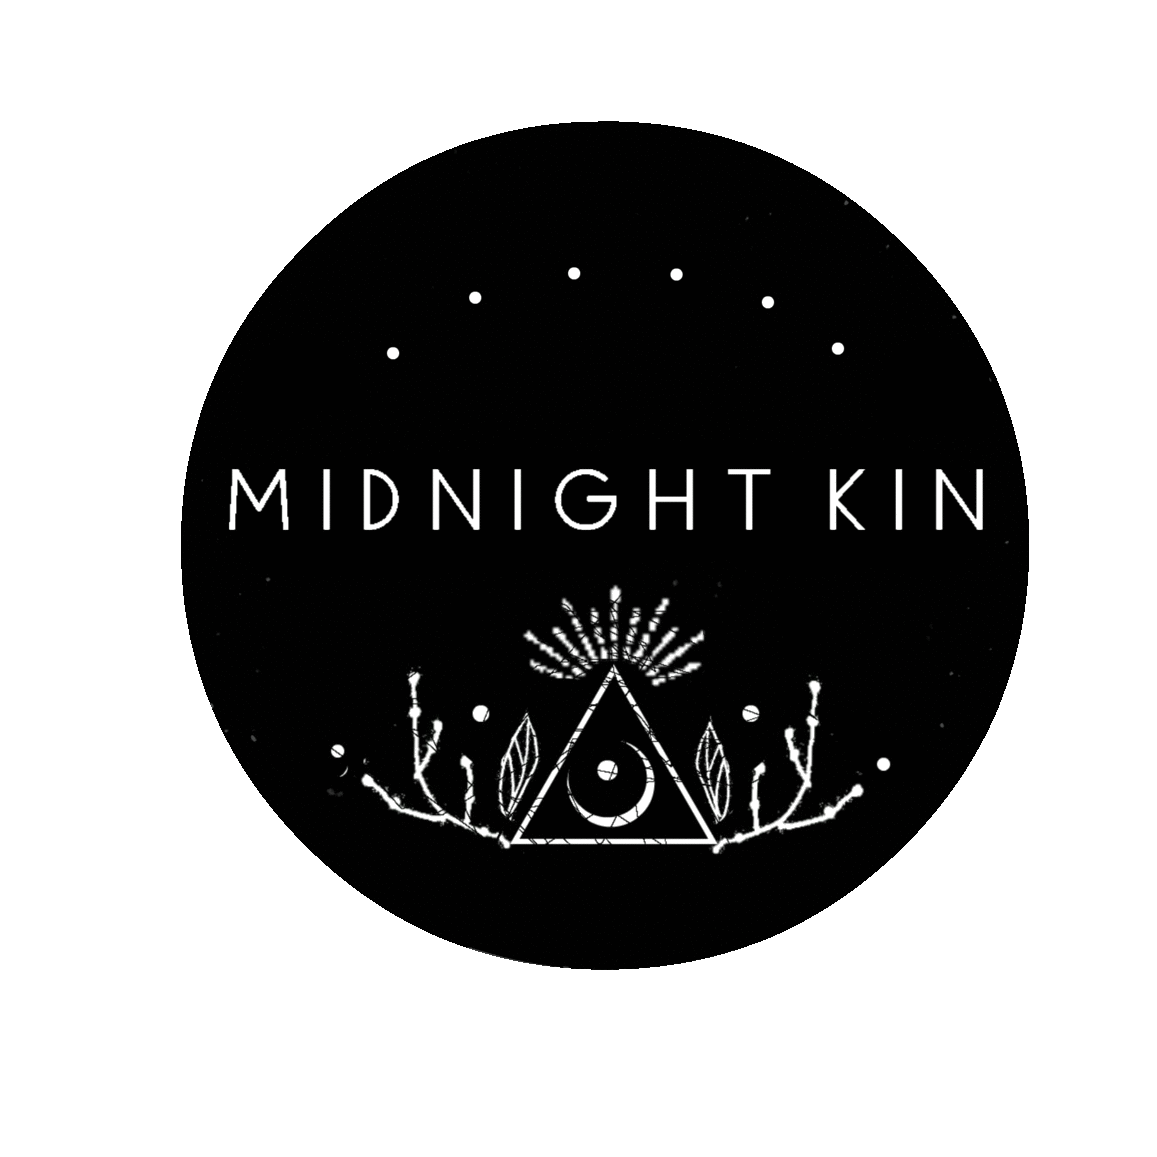 MIDNIGHT KIN